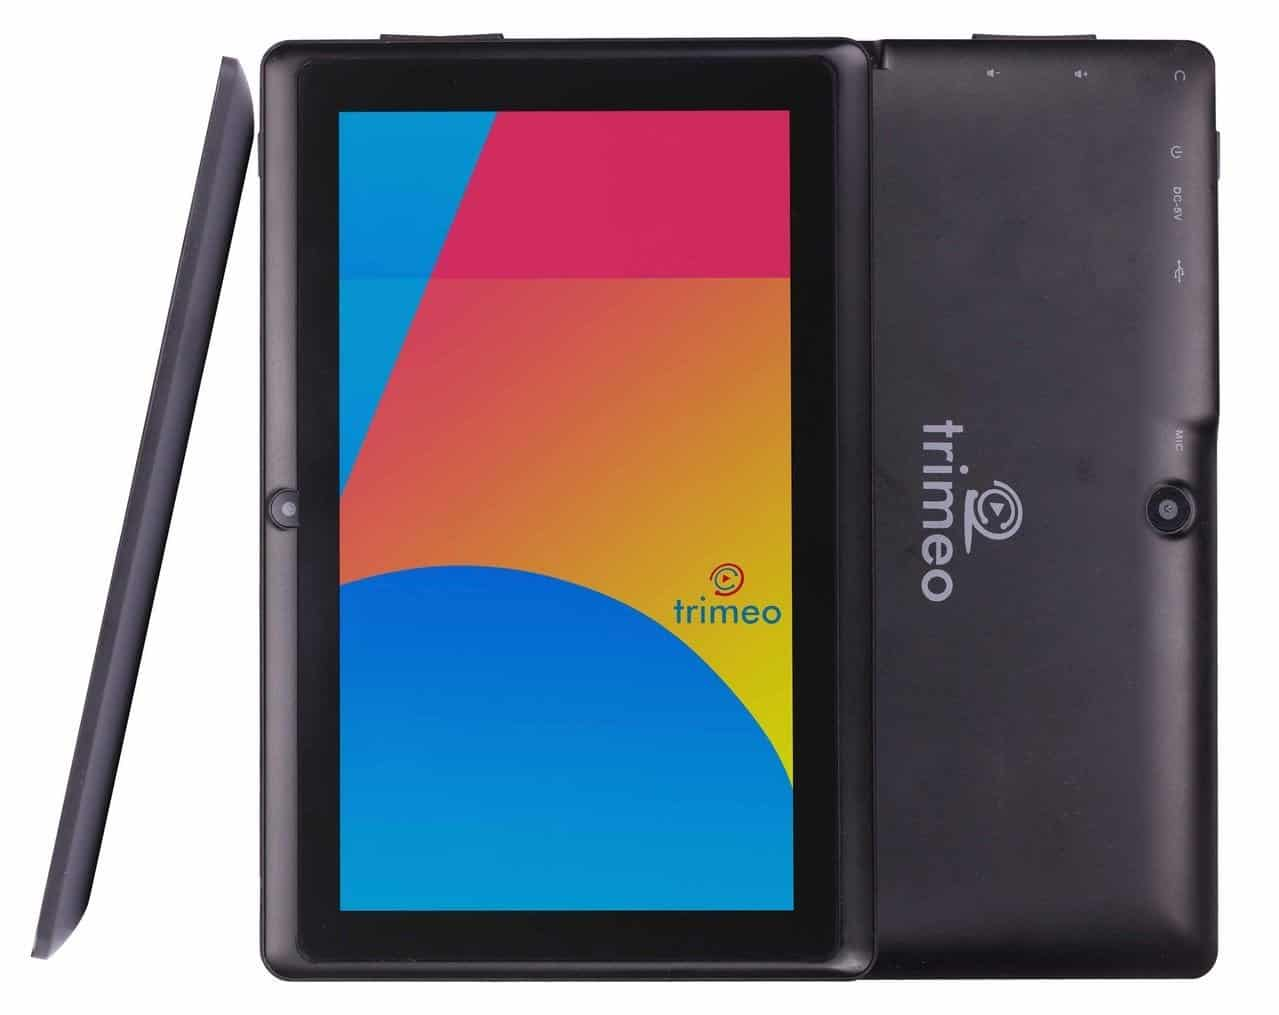 Trimeo 7″ Android Tablet (2015 Model) Review